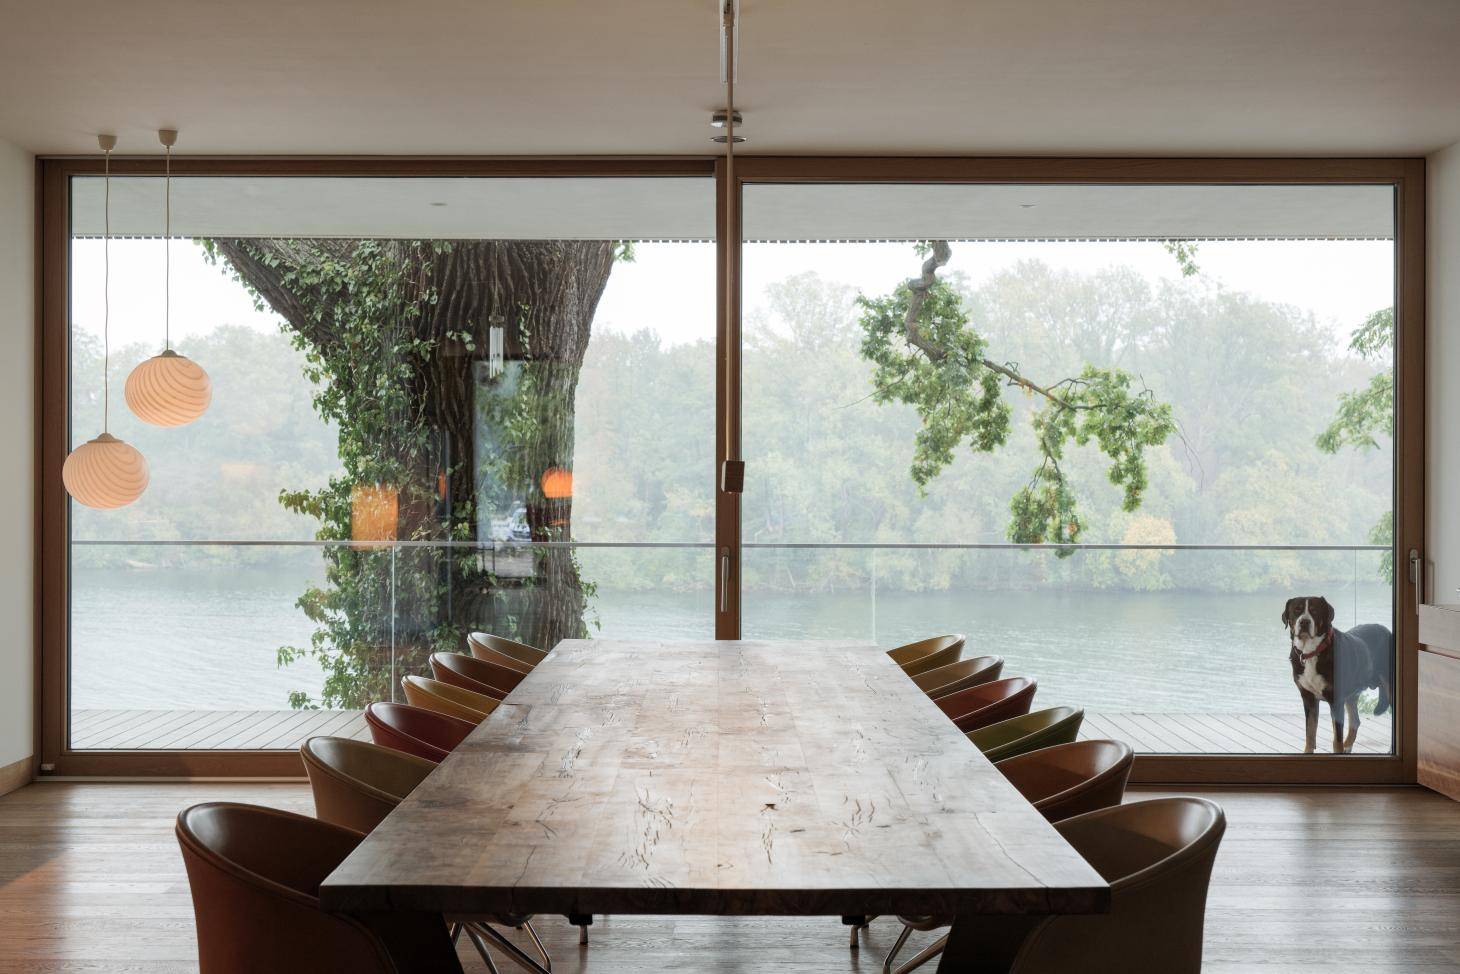 The 7.5m long dining table in Carlos Zwick's House on the Lake